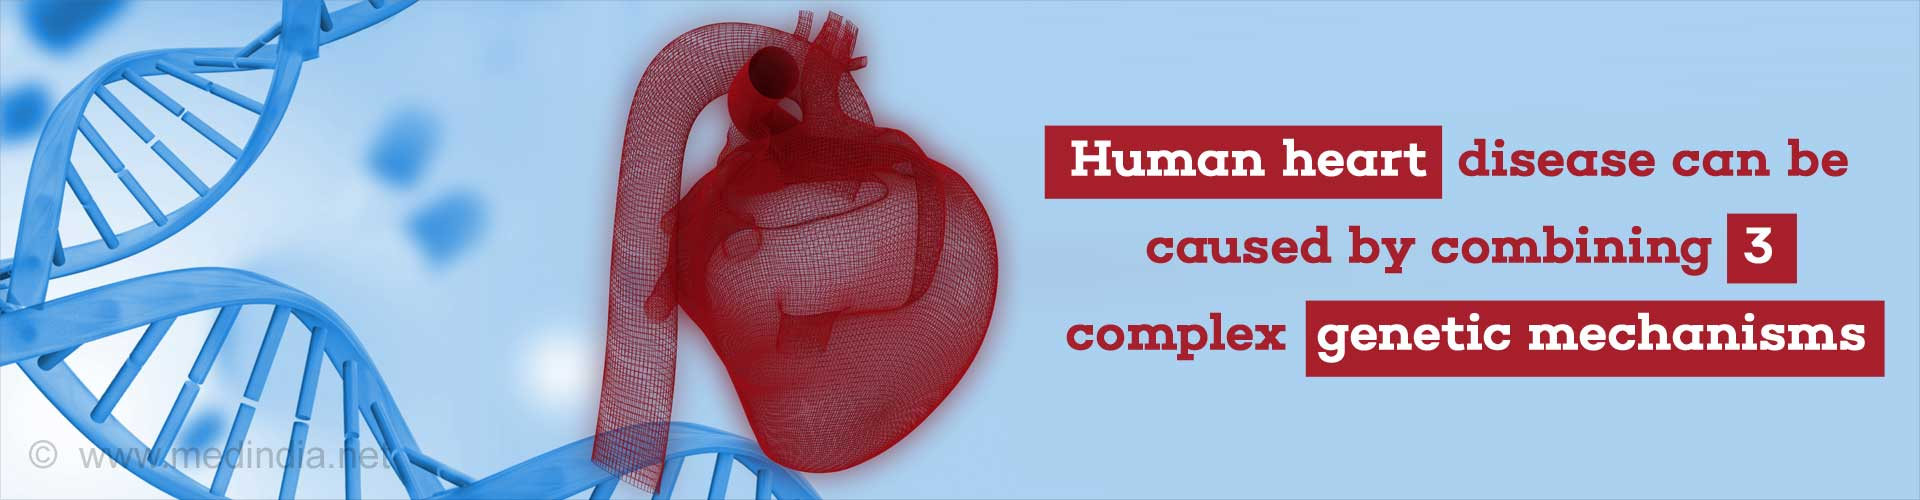 Combination of Three Gene Mutations Can Result in Deadly Heart Disease